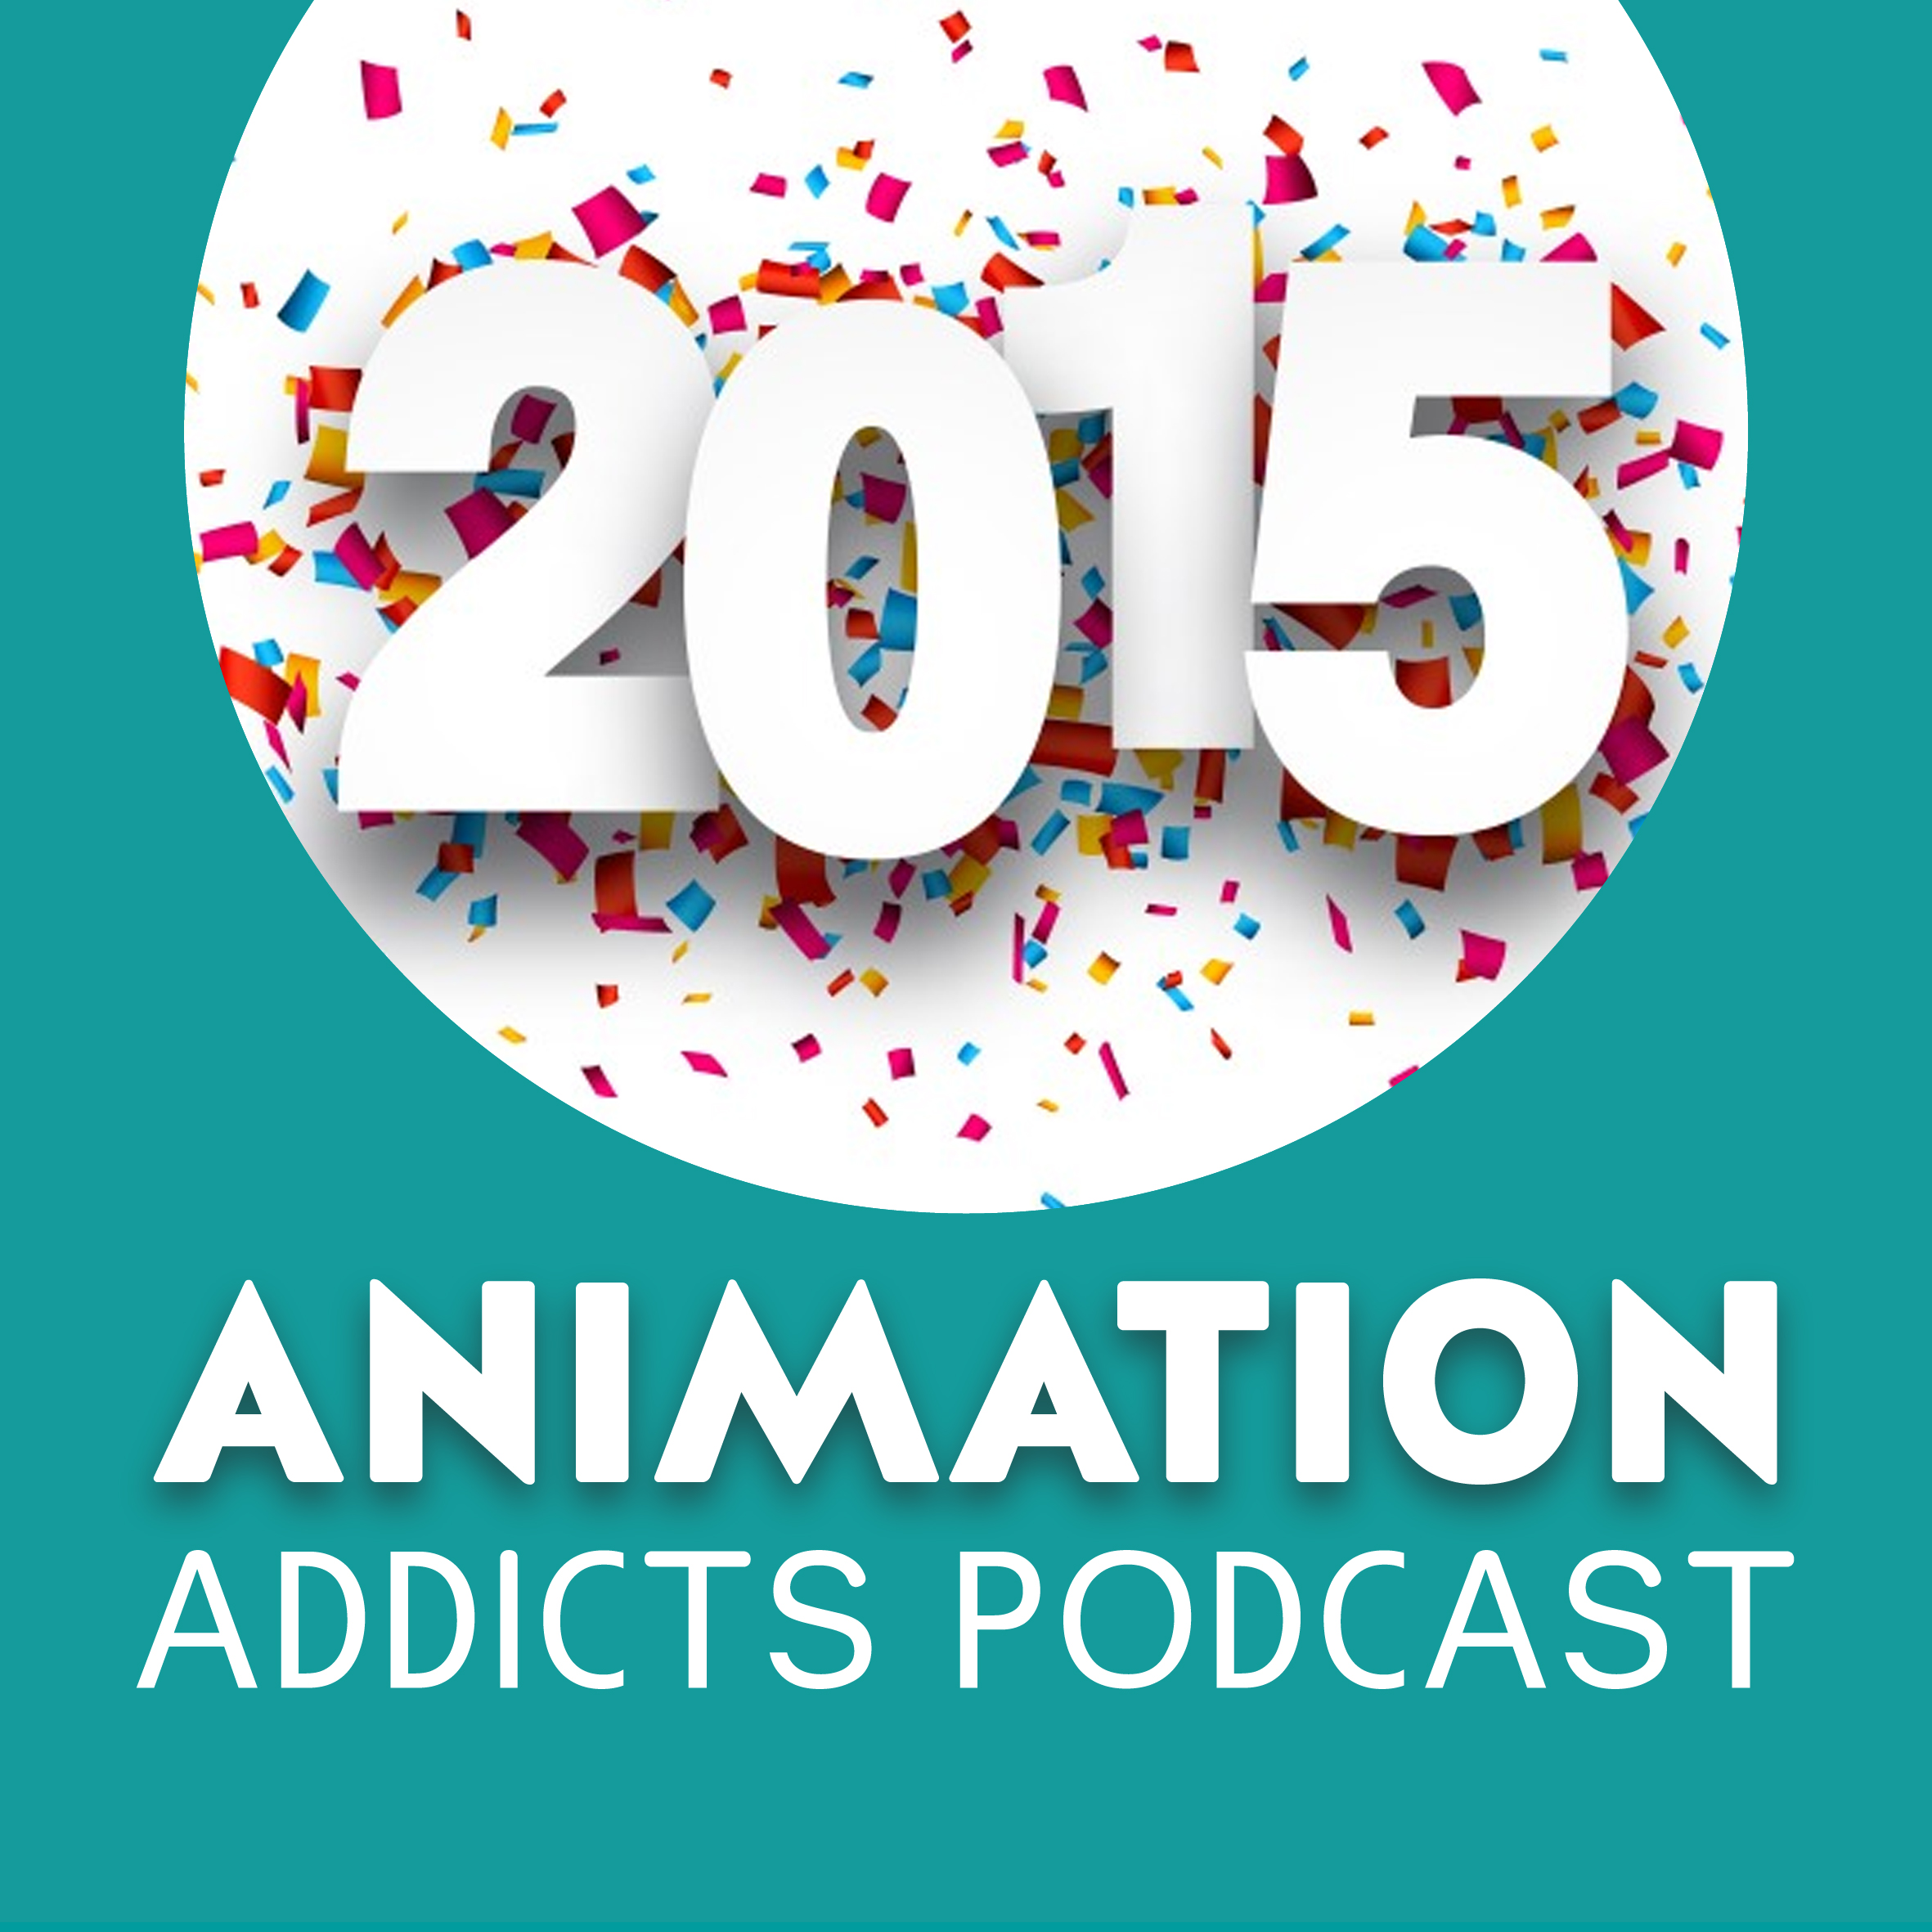 112 Best of 2015 - Rotoscopers Awards & Roto Trivia with Chad Lewis of LewToons